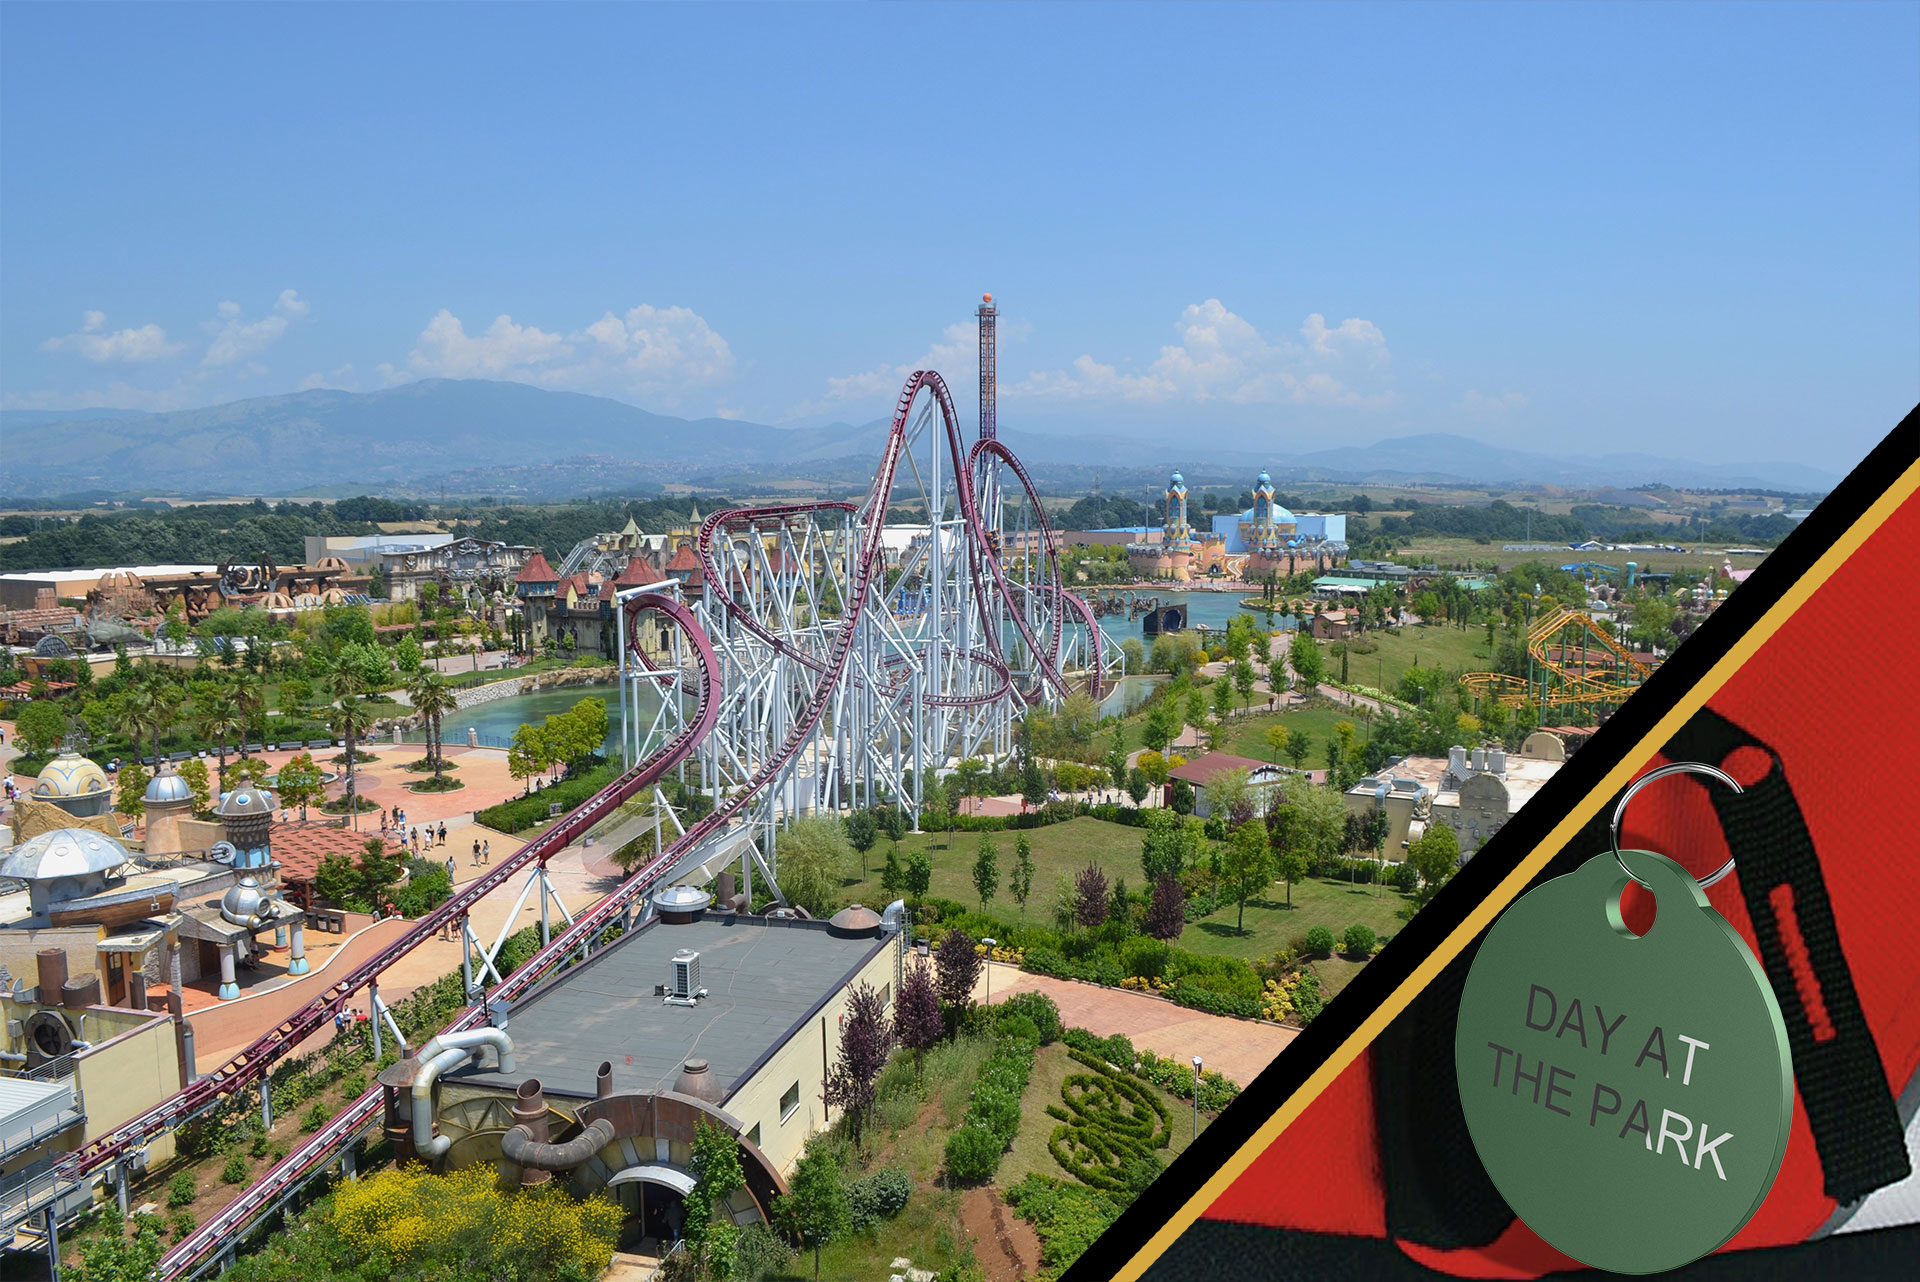 Overview of an amusement park with a focus on a personalized souvenir gift